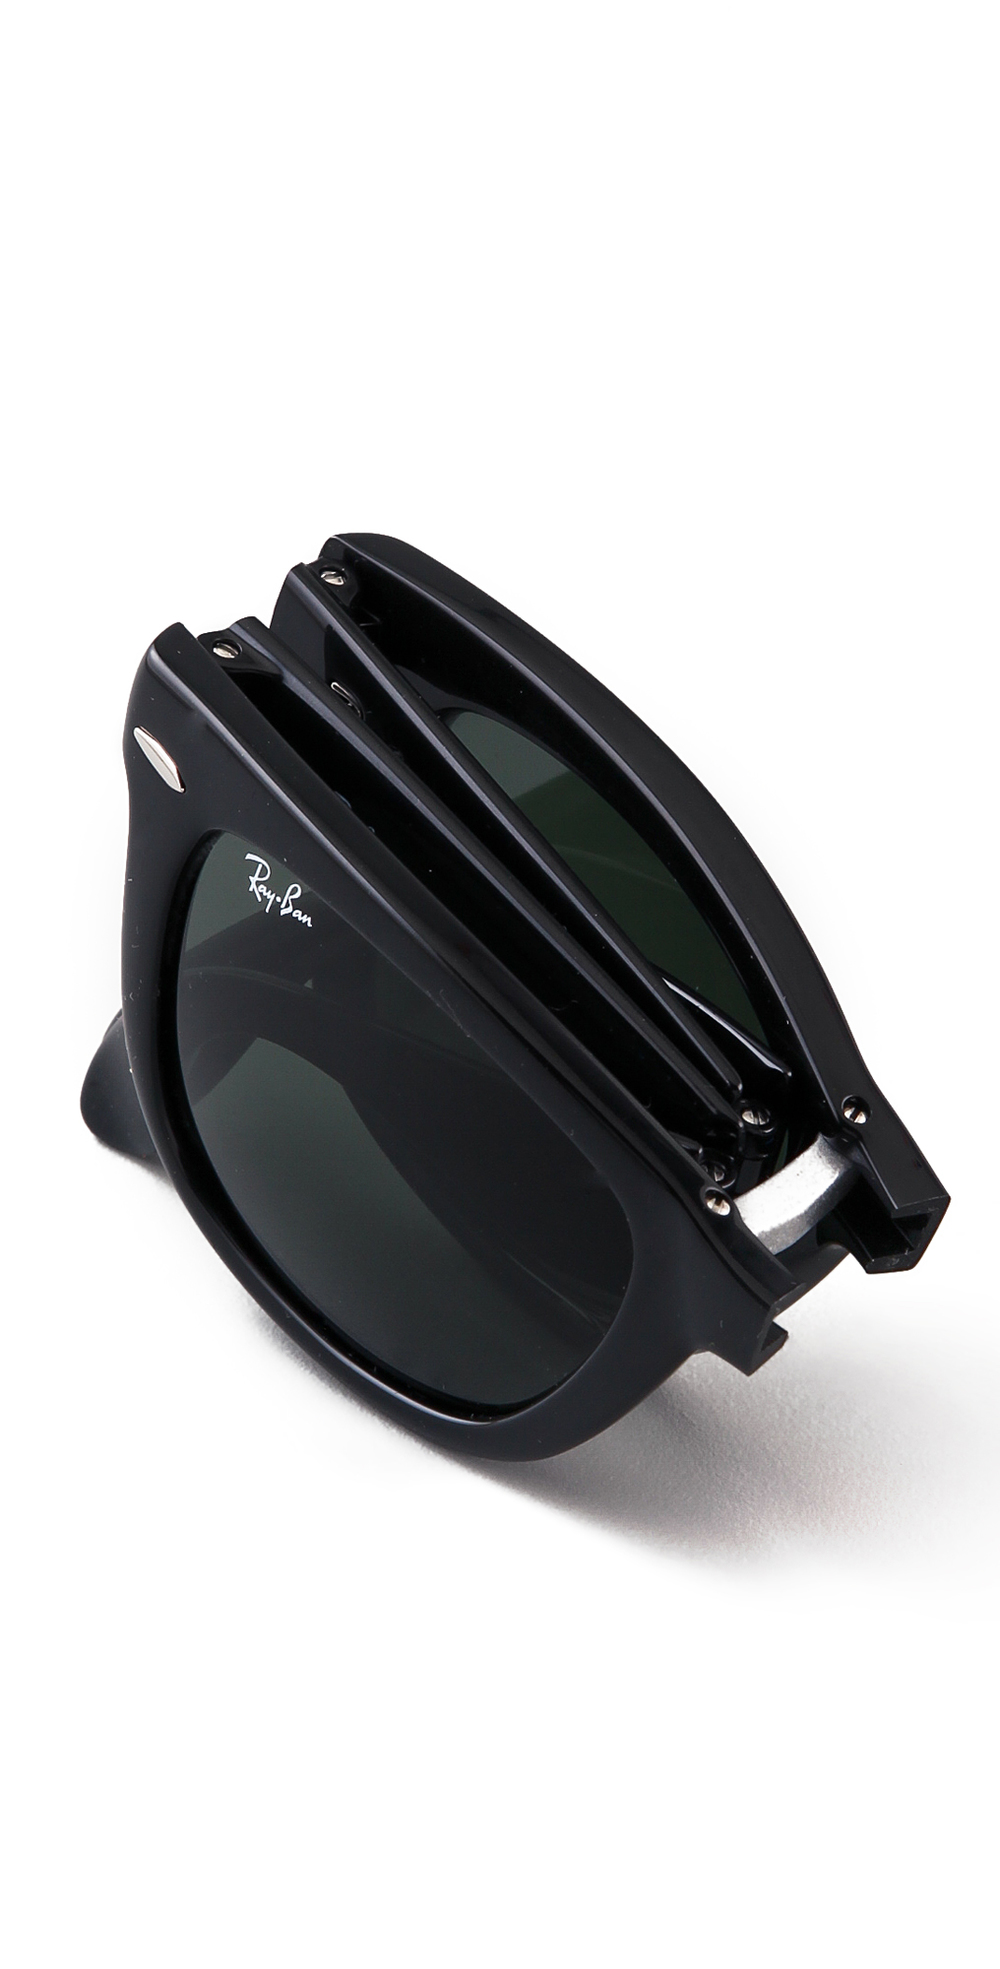 ray-ban-blackgreen-folding-wayfarer-sunglasses-product-1-13453195-492608285.jpeg